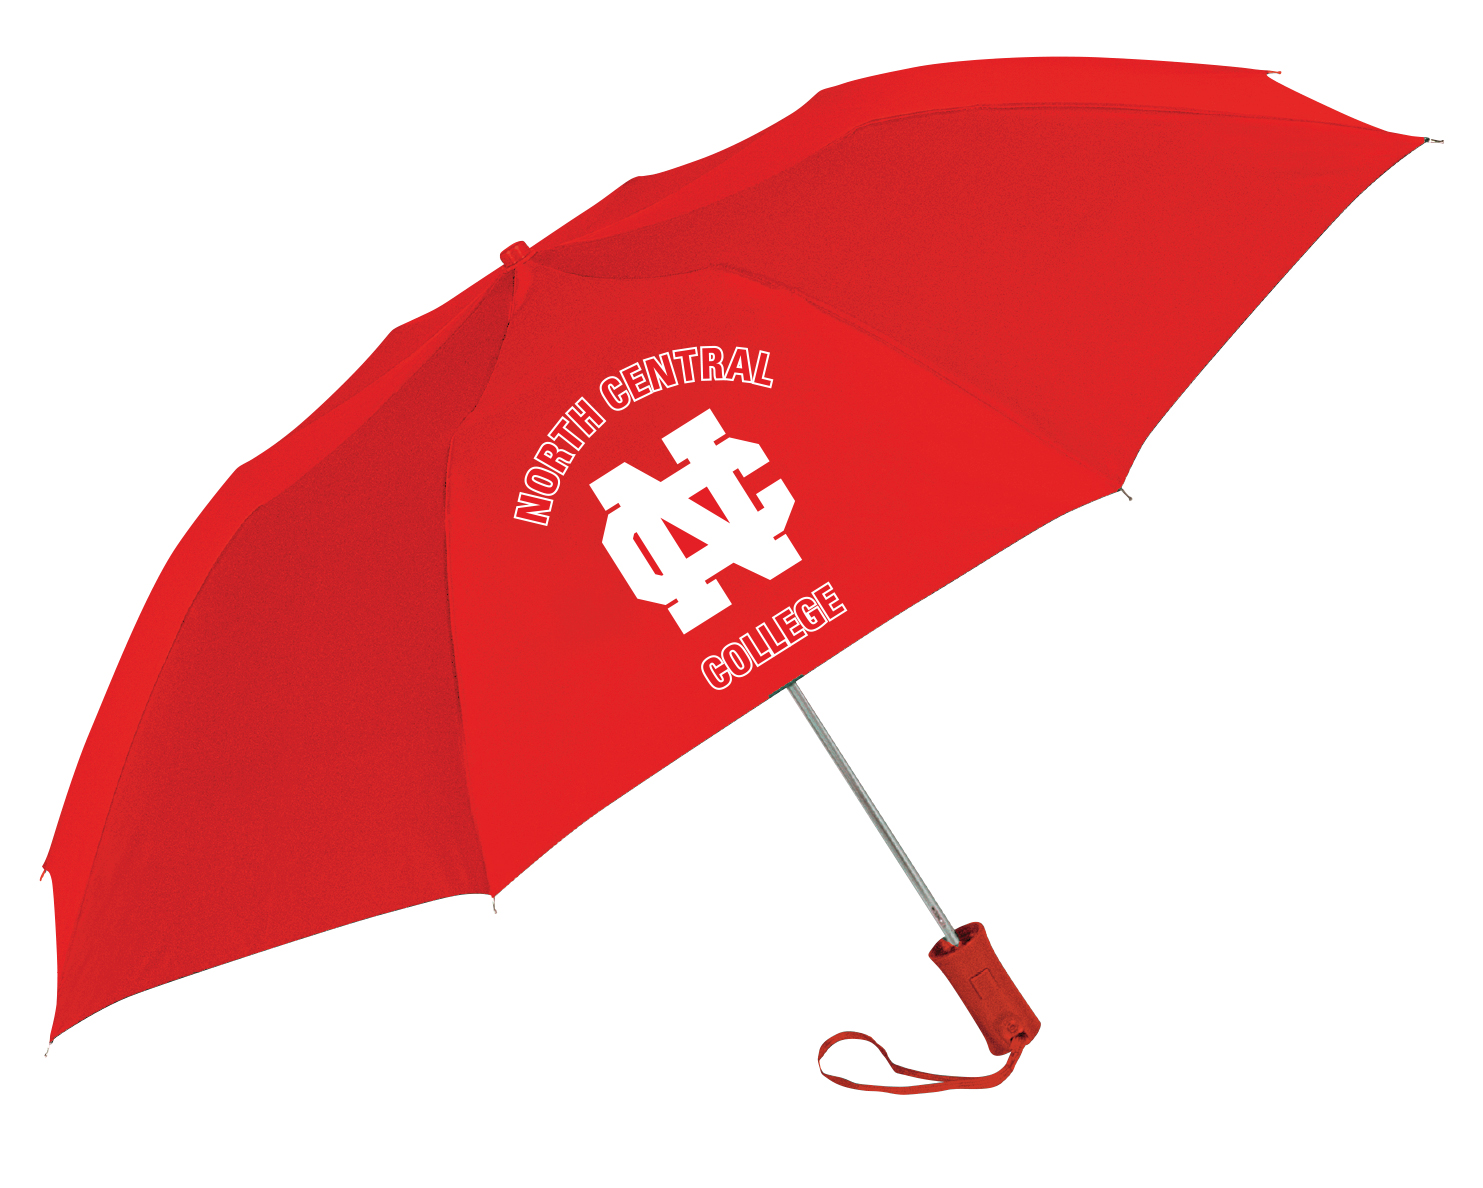 Image for the Solid Red umbrella with school name product